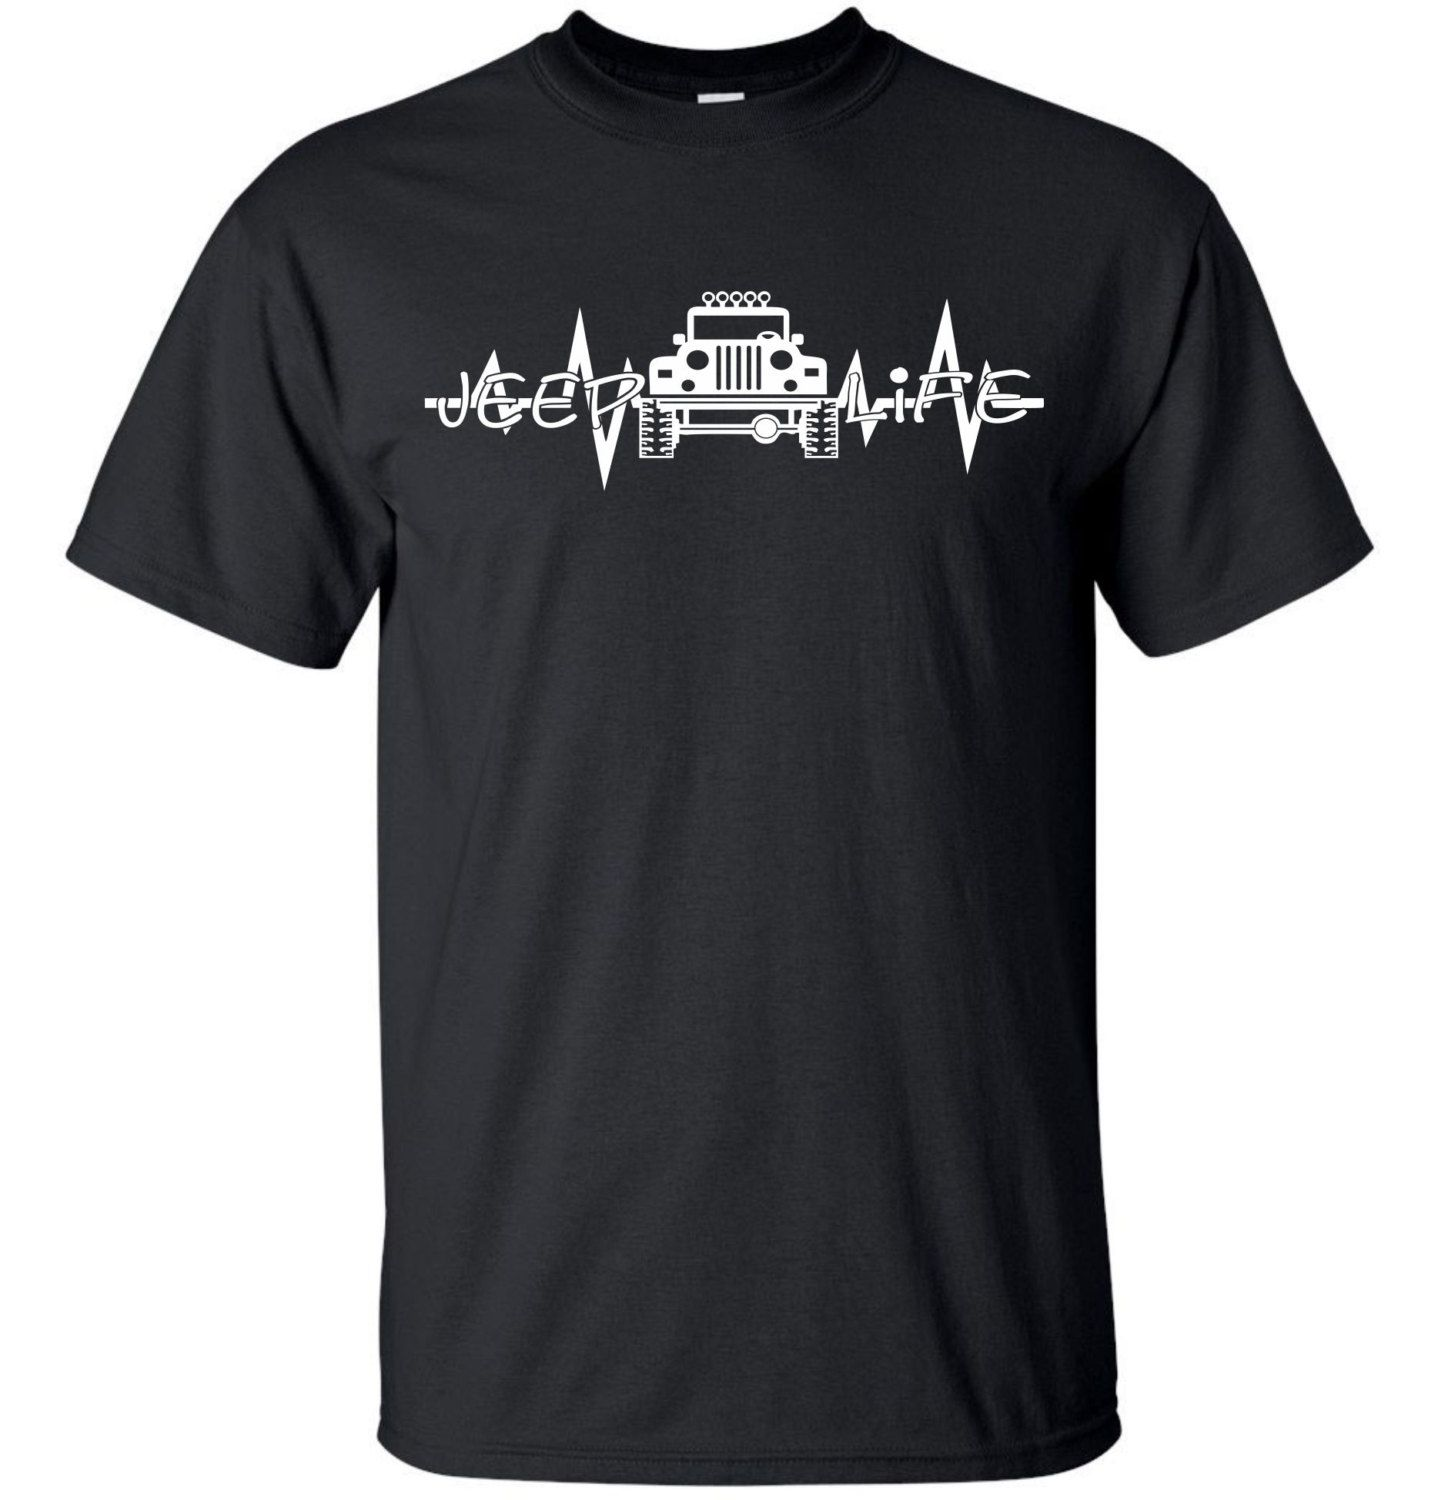 Jeep Life... T-Shirt by MathesonGraphics on Etsy